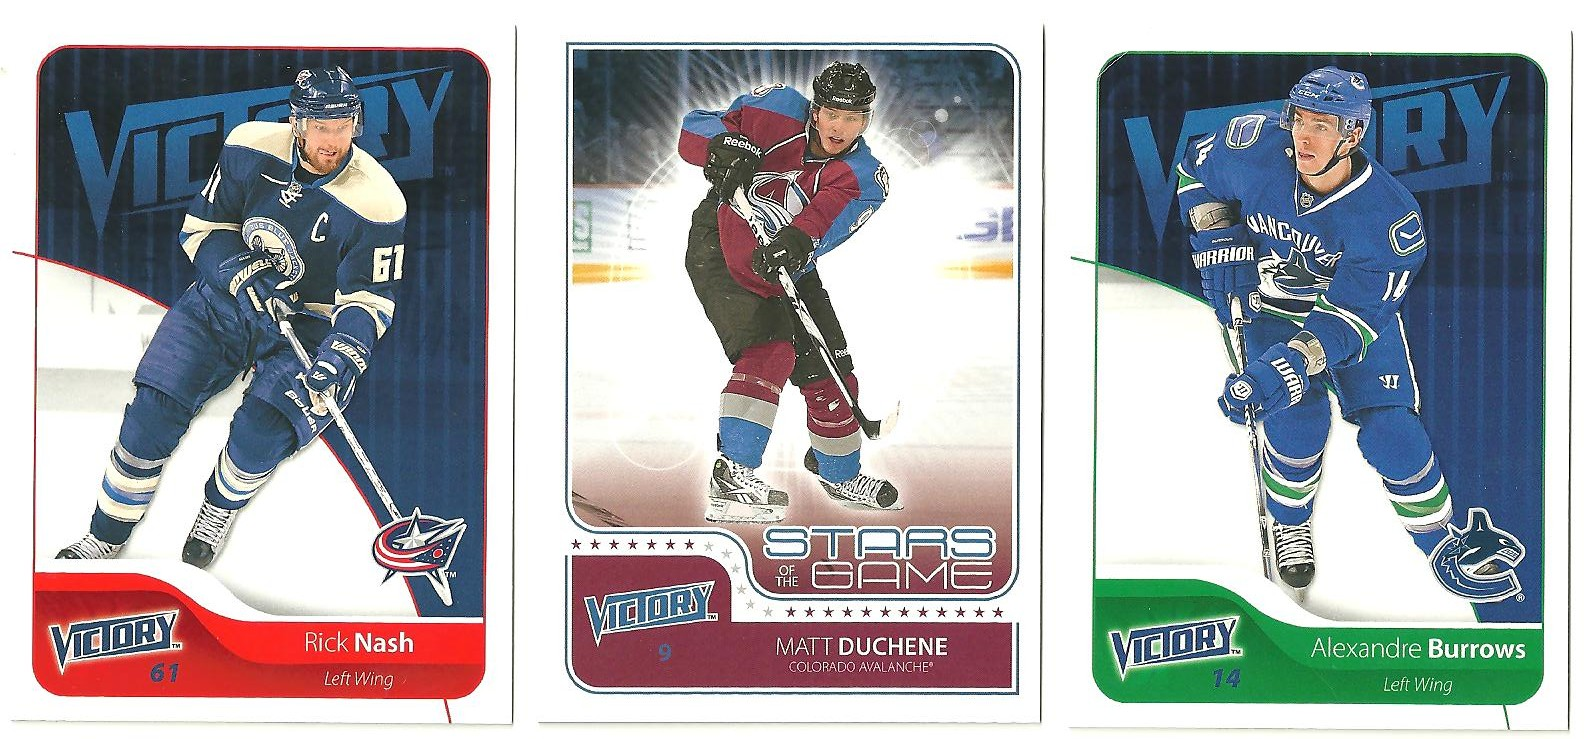 cbdac10d096 Rick Nash - 56. This Nash card is an example of what I mean by  clear cut  of the players on the card . For some reason the card just seems to flow.